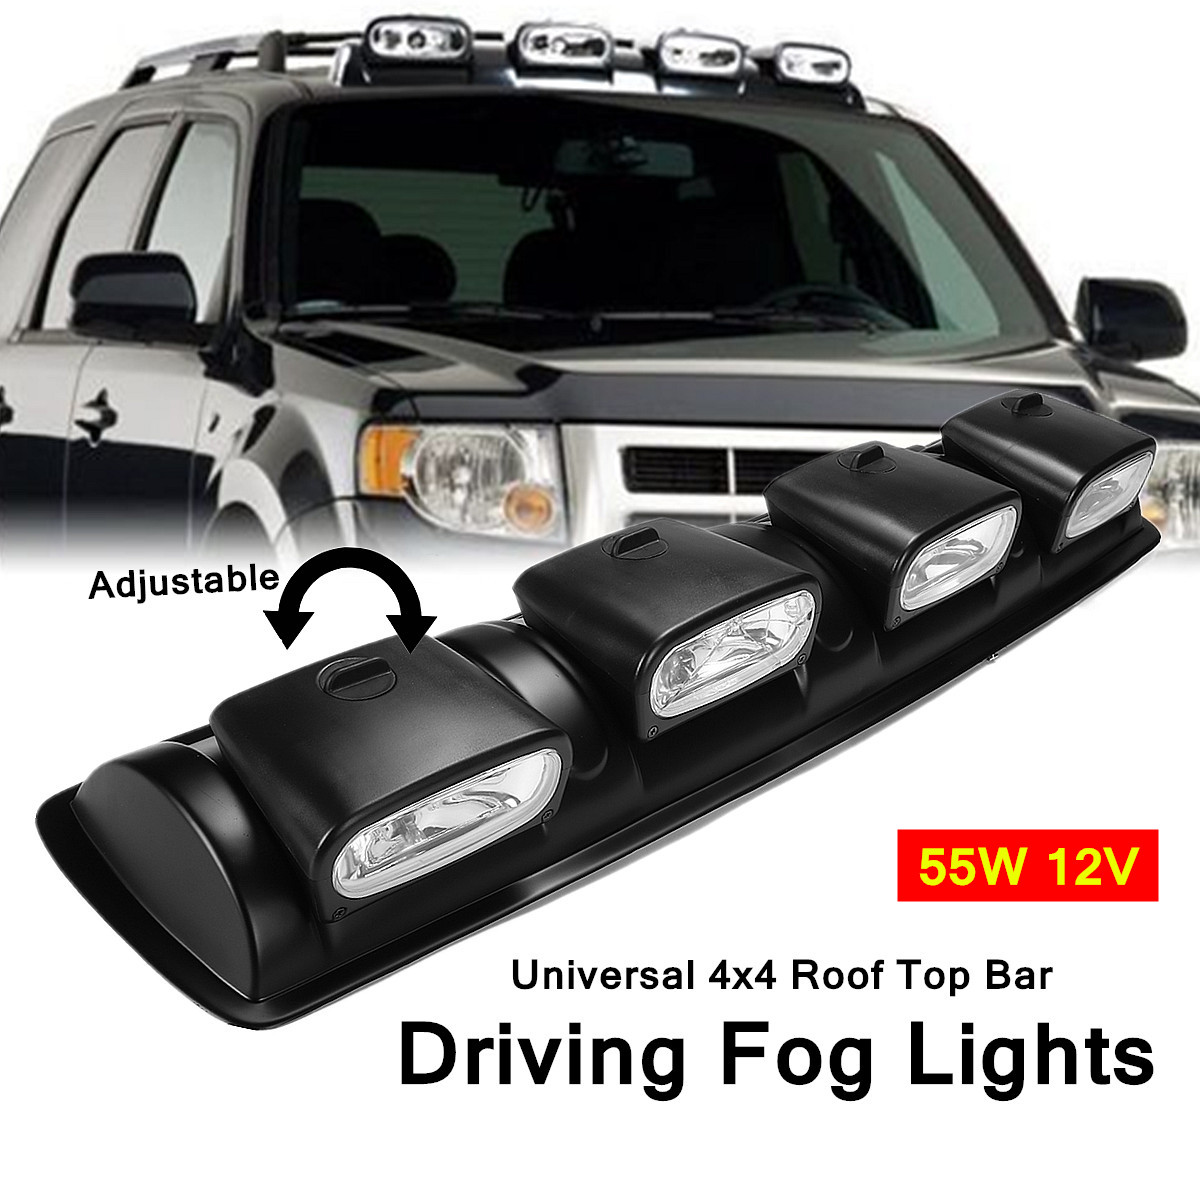 Universal Roof Top Bar Driving Fog Lights 4 Lens Offroad Spot Head Lamps Front Fog Lamp 12V 55W H3 Bulb Fits For All Vehicles